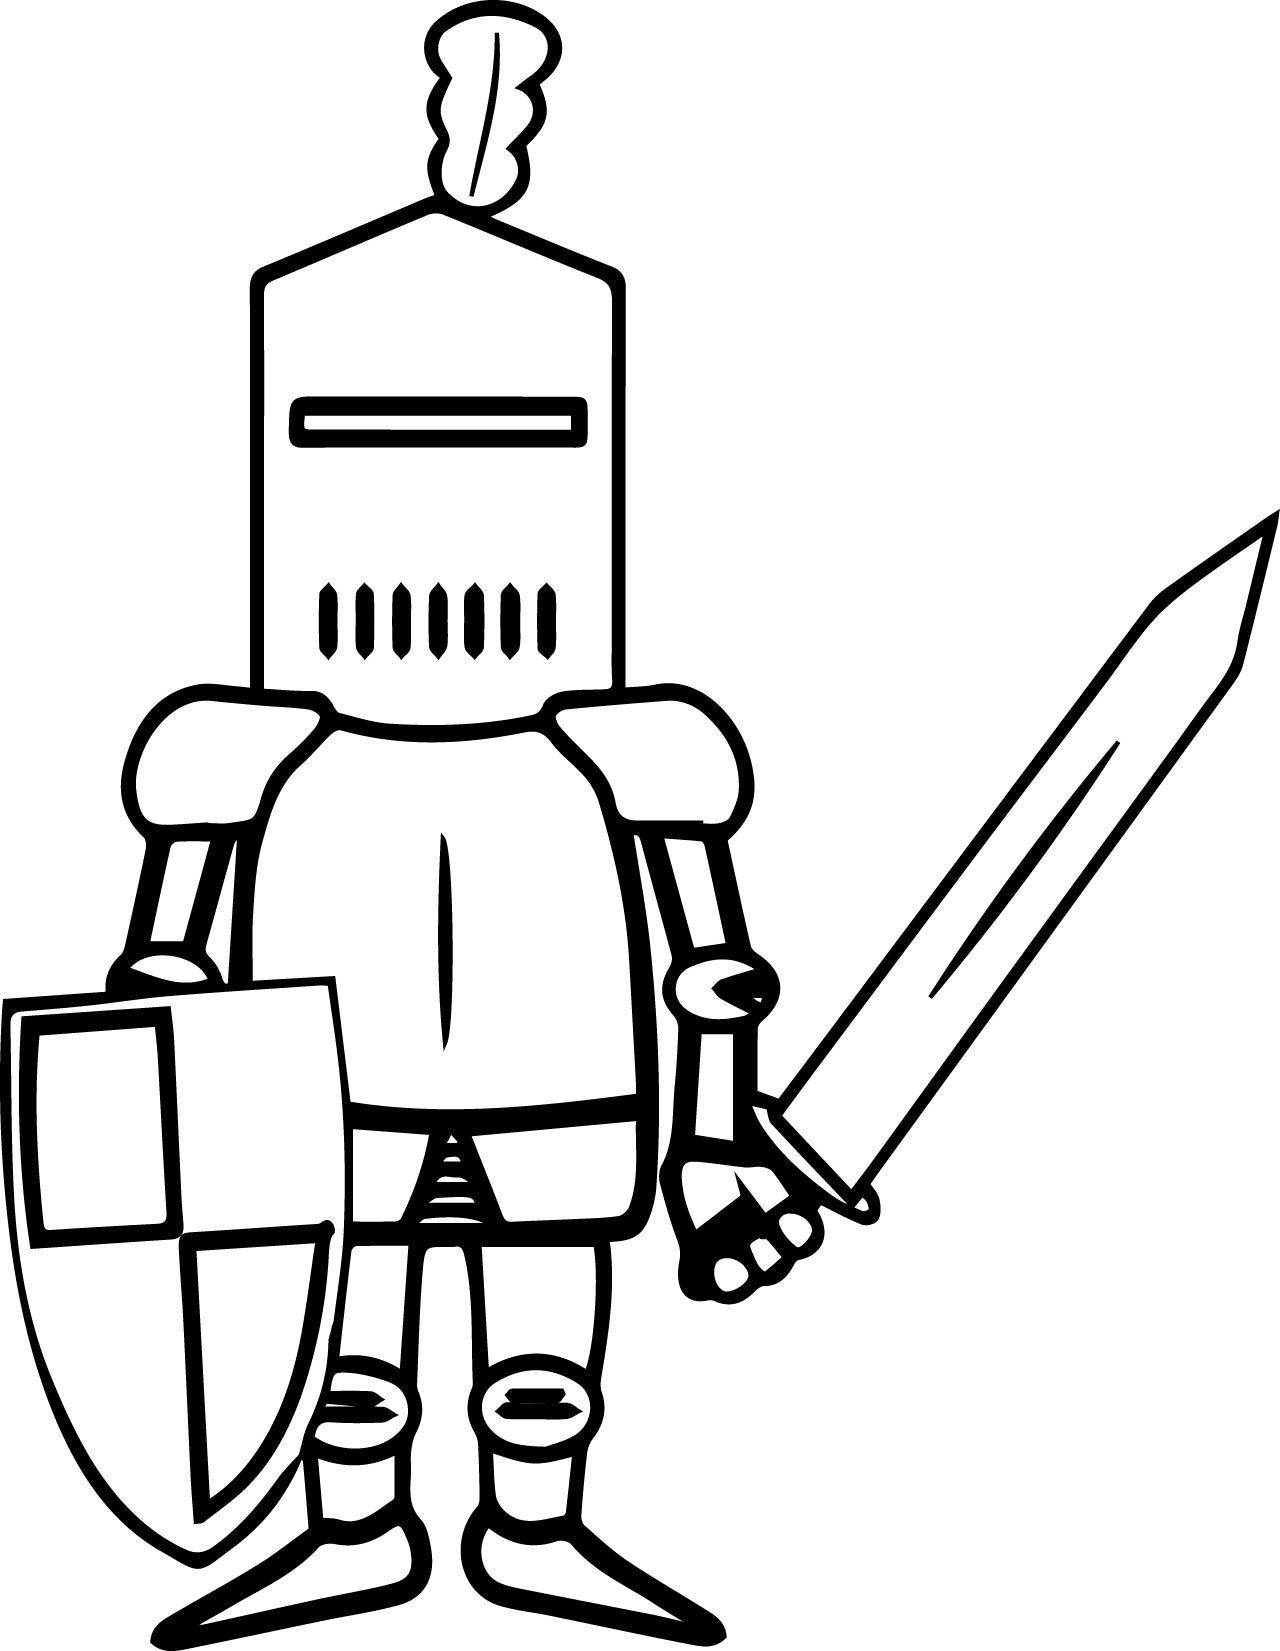 Knight Sword Coloring Page Knight Coloring Pages Pinterest